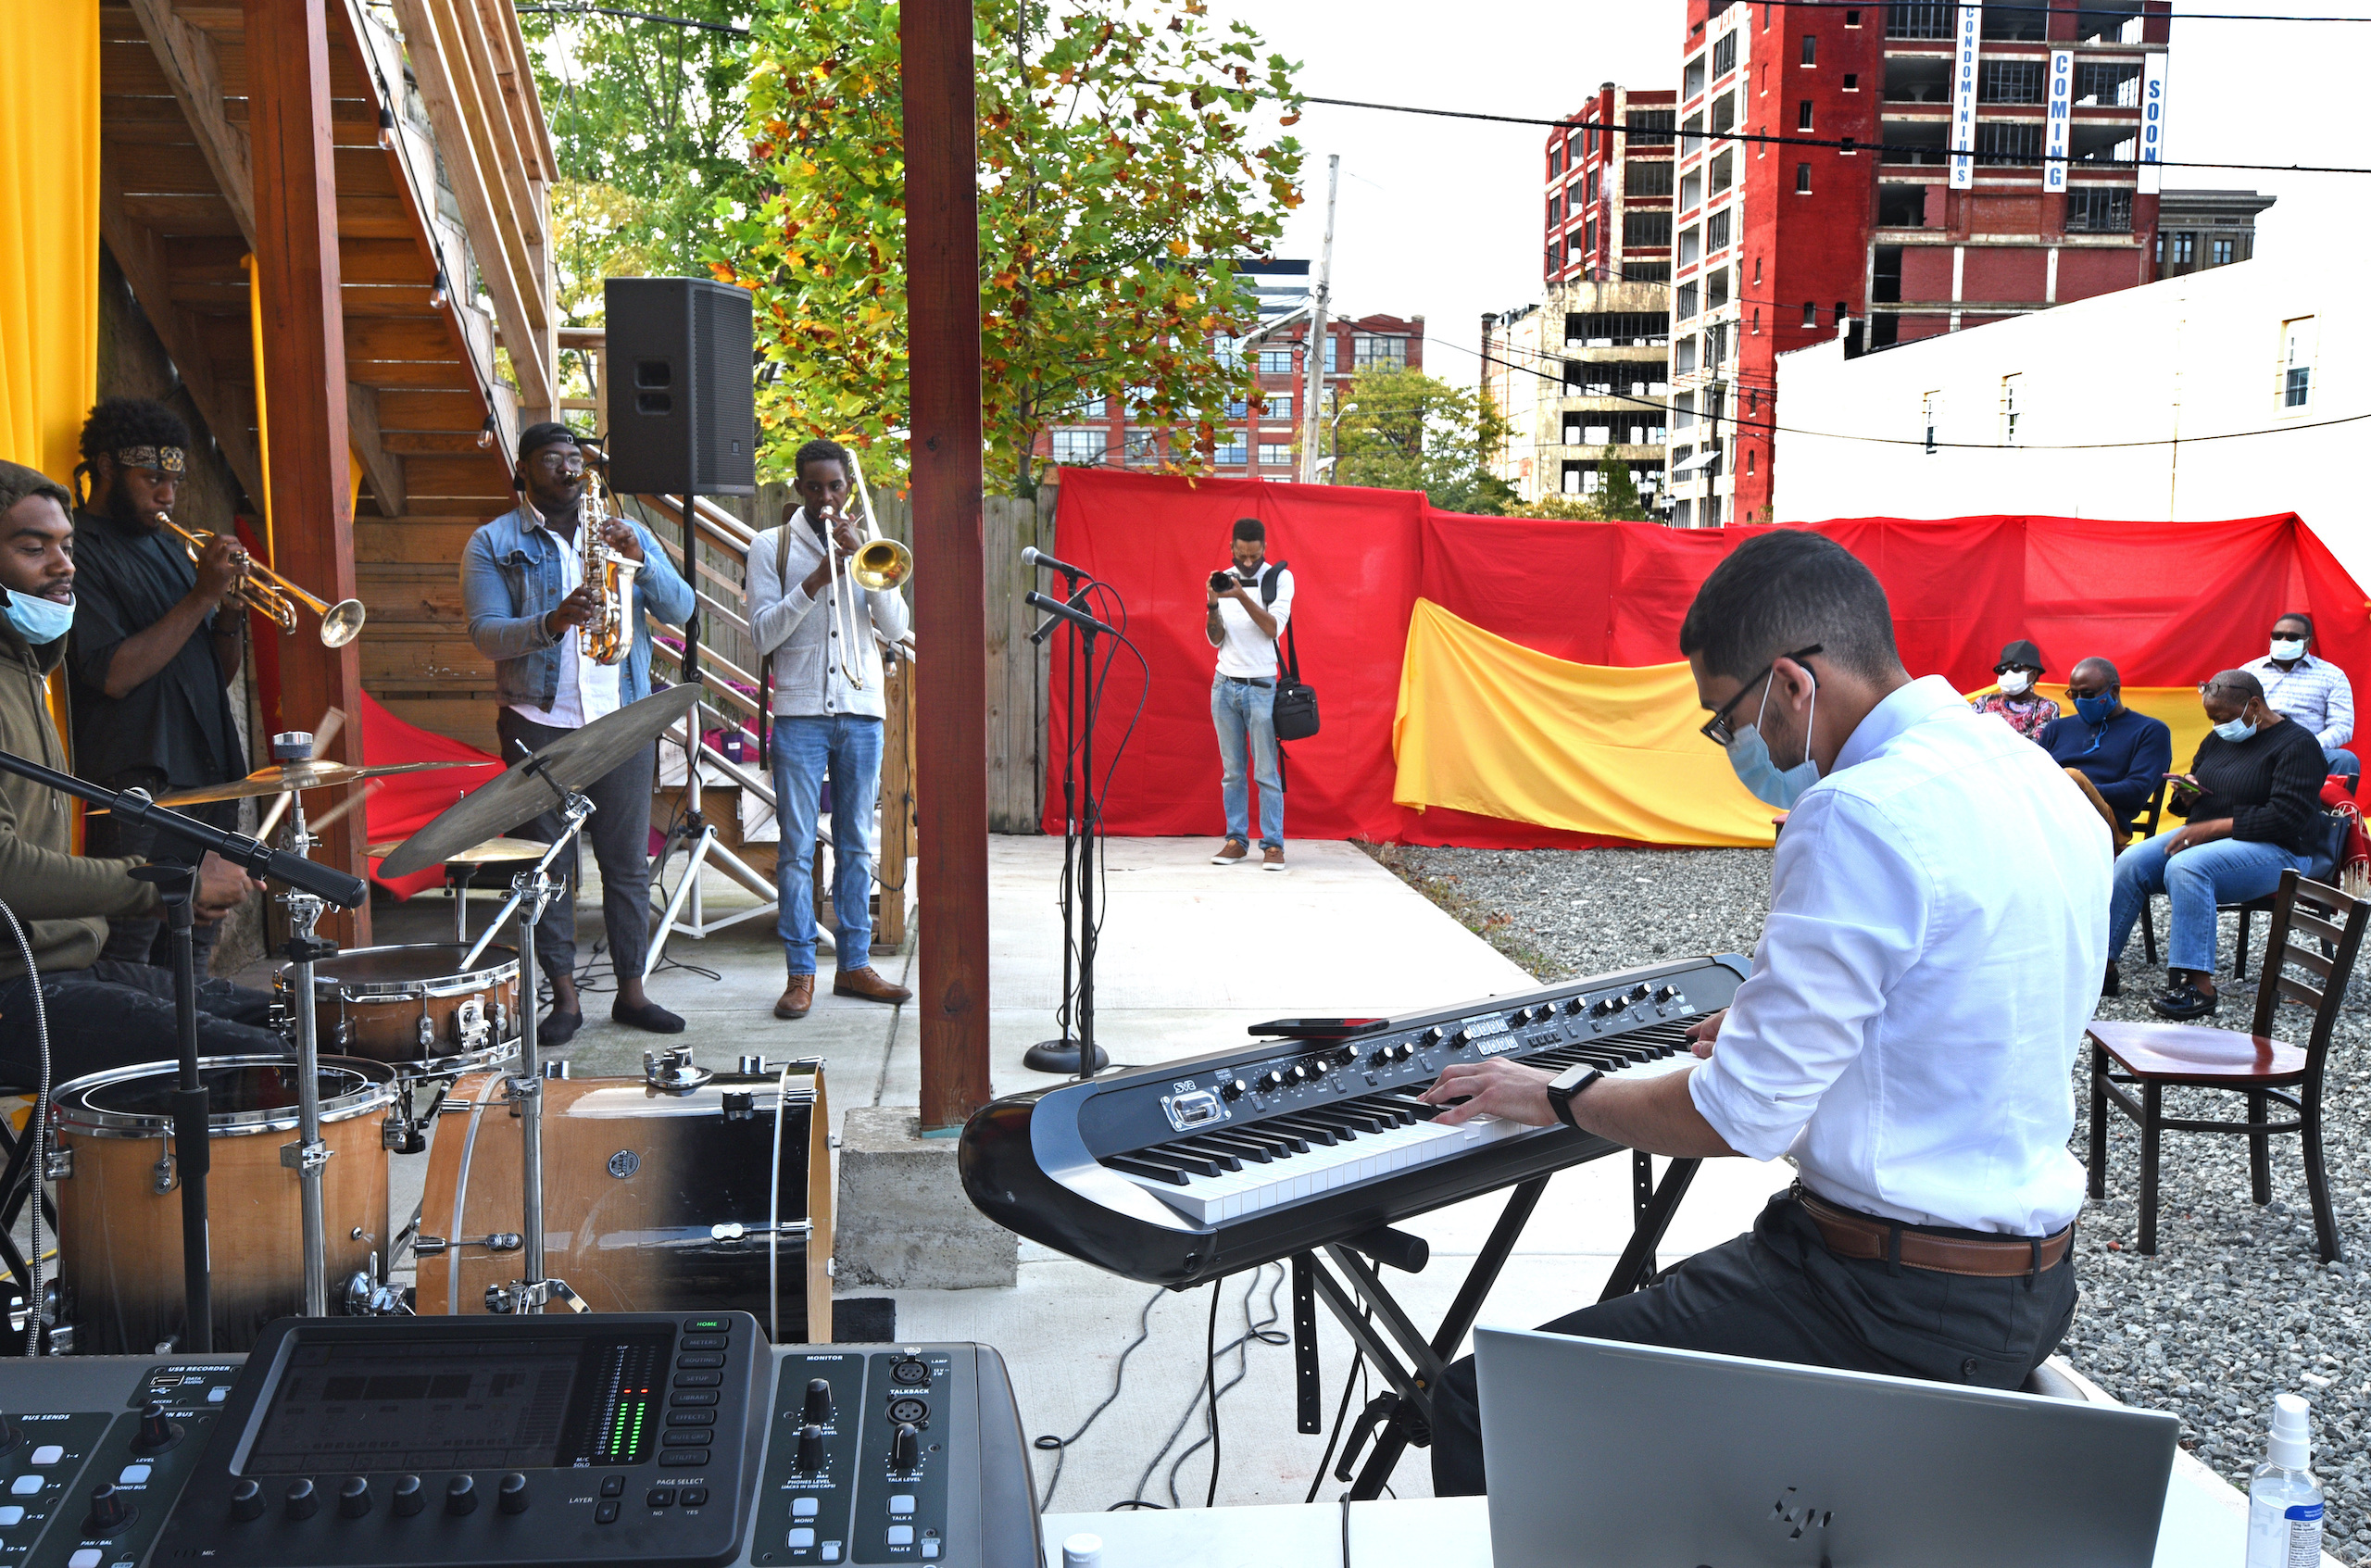 Jazz musicians perform in the IDEA Center's backyard